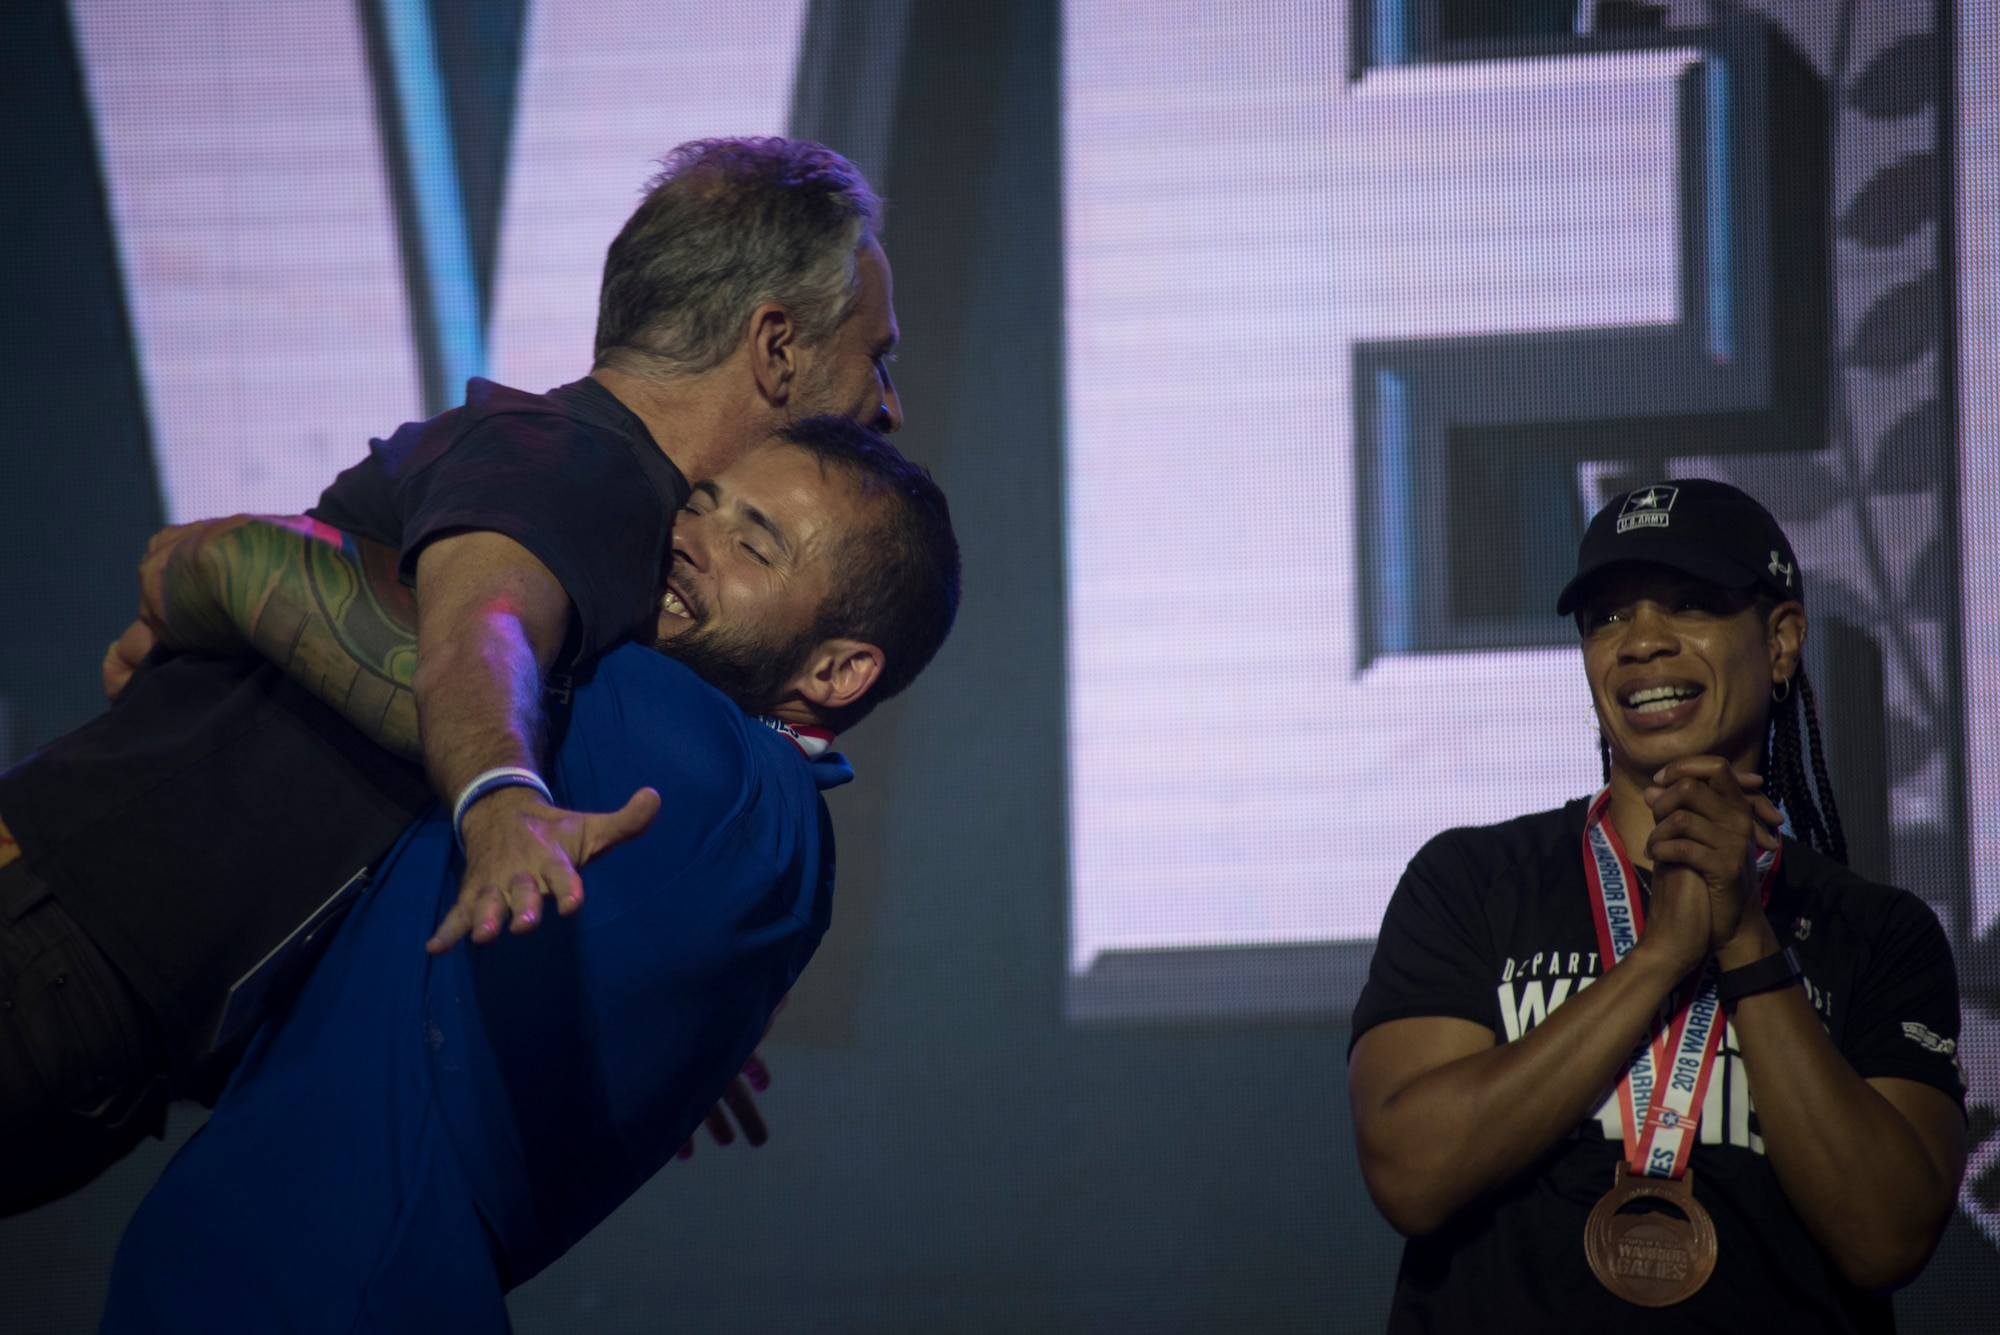 """Rafael Morfinenciso, Department of Defense Warrior Games athlete and Team Air Force member, embraces Jon Stewart, television personality and event host, after winning the """"ultimate champion"""" silver medal during the closing ceremony of the Games held at the U.S. Air Force Academy, Colorado Springs, Colo., June 9, 2018. To earn the ultimate champion title, athletes had to compete in their respective functional classifications in eight sporting events, earning points for each of their performances. The athletes with the highest cumulative points after their eight events won the bronze, silver and gold ultimate champion medals. (U.S. Air Force photo by Senior Airman Dennis Hoffman)"""